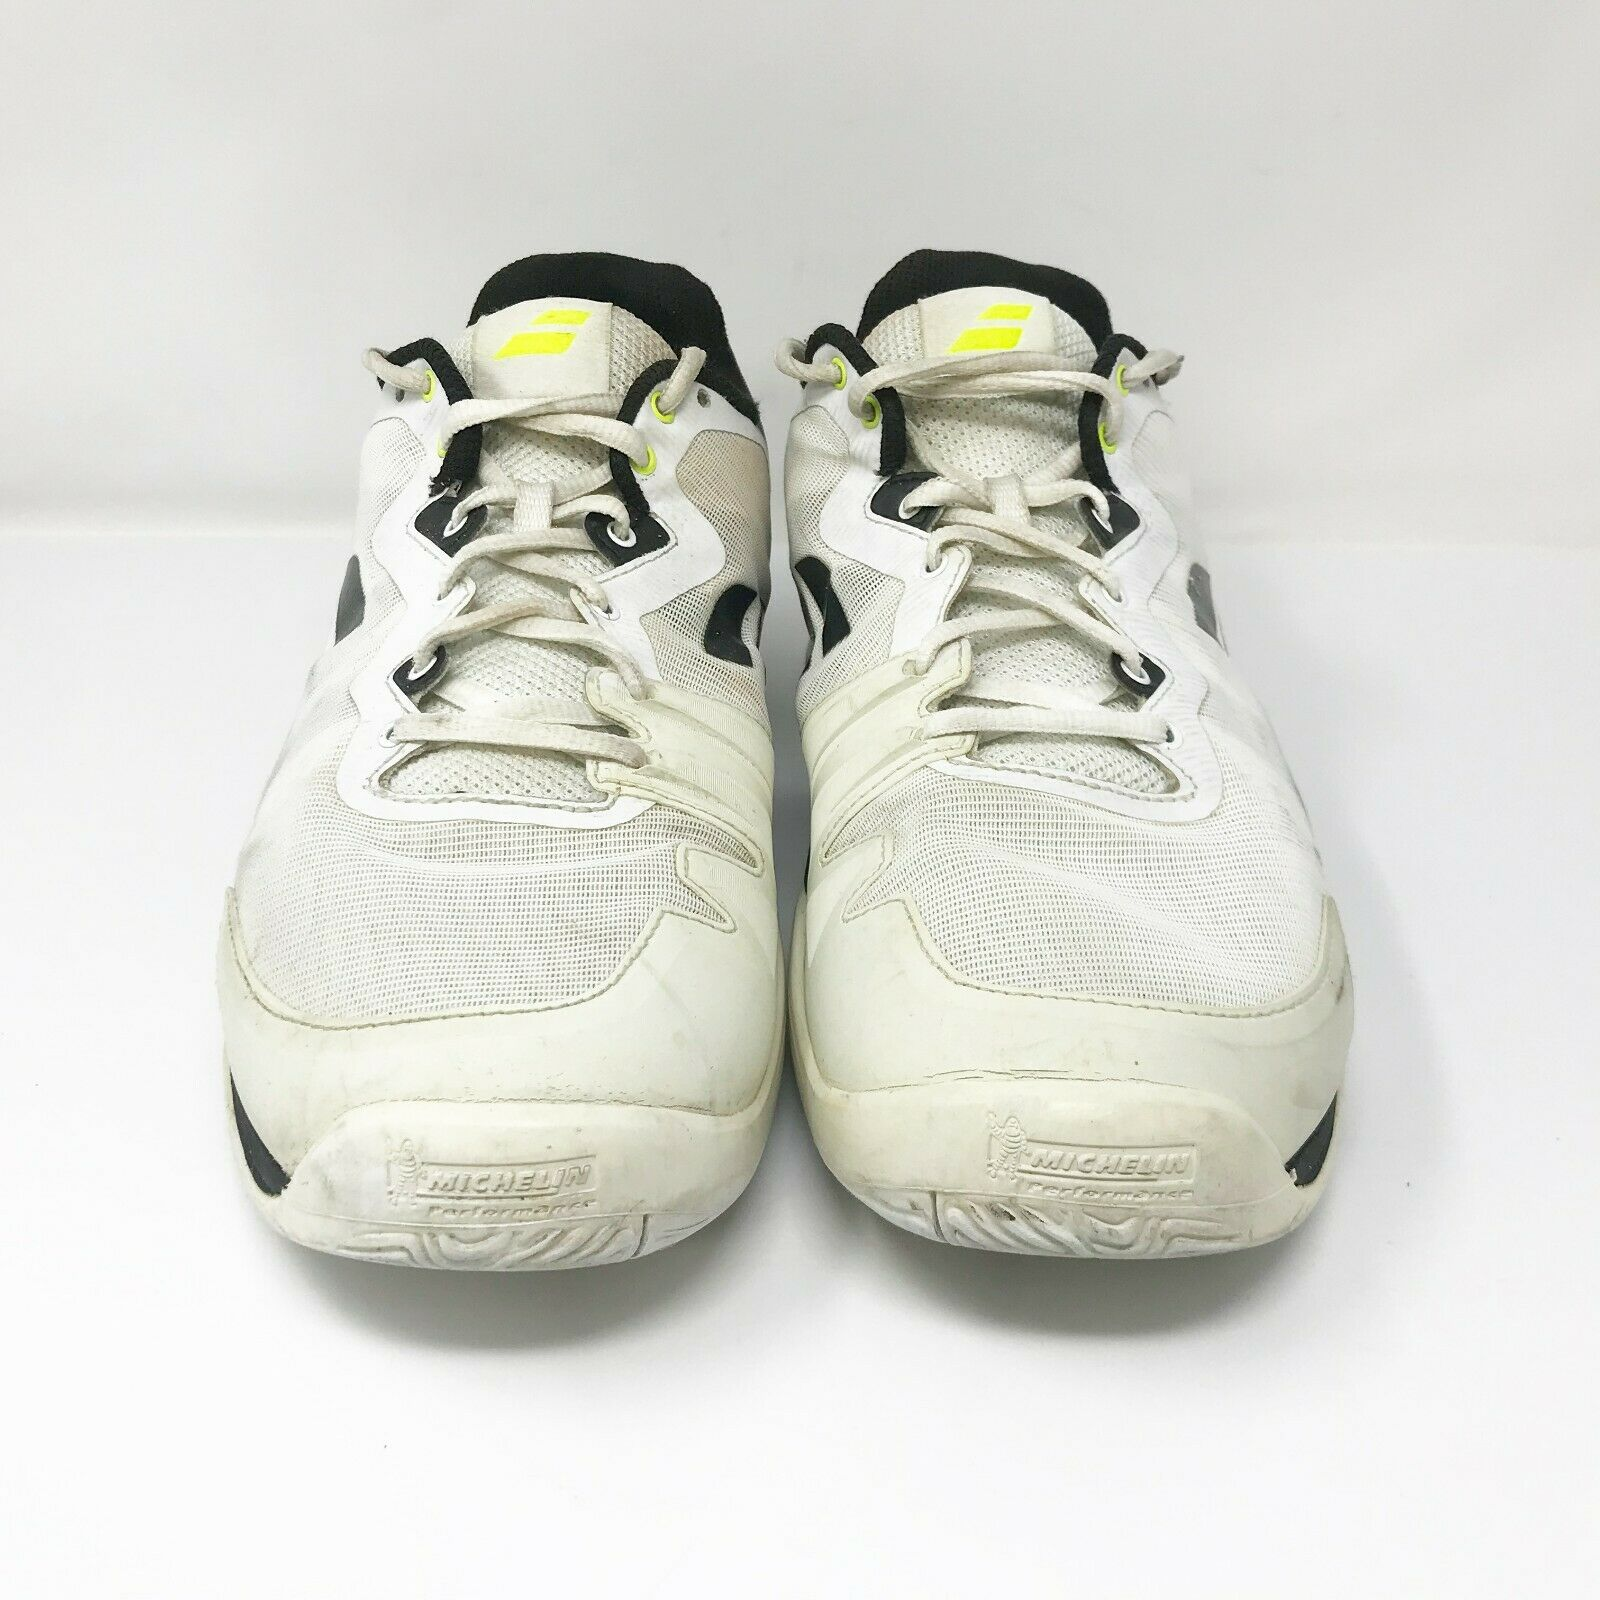 30S18529 Sneakers WHITE// BLACK Babolat SFX3 All Court Mens Tennis Shoes